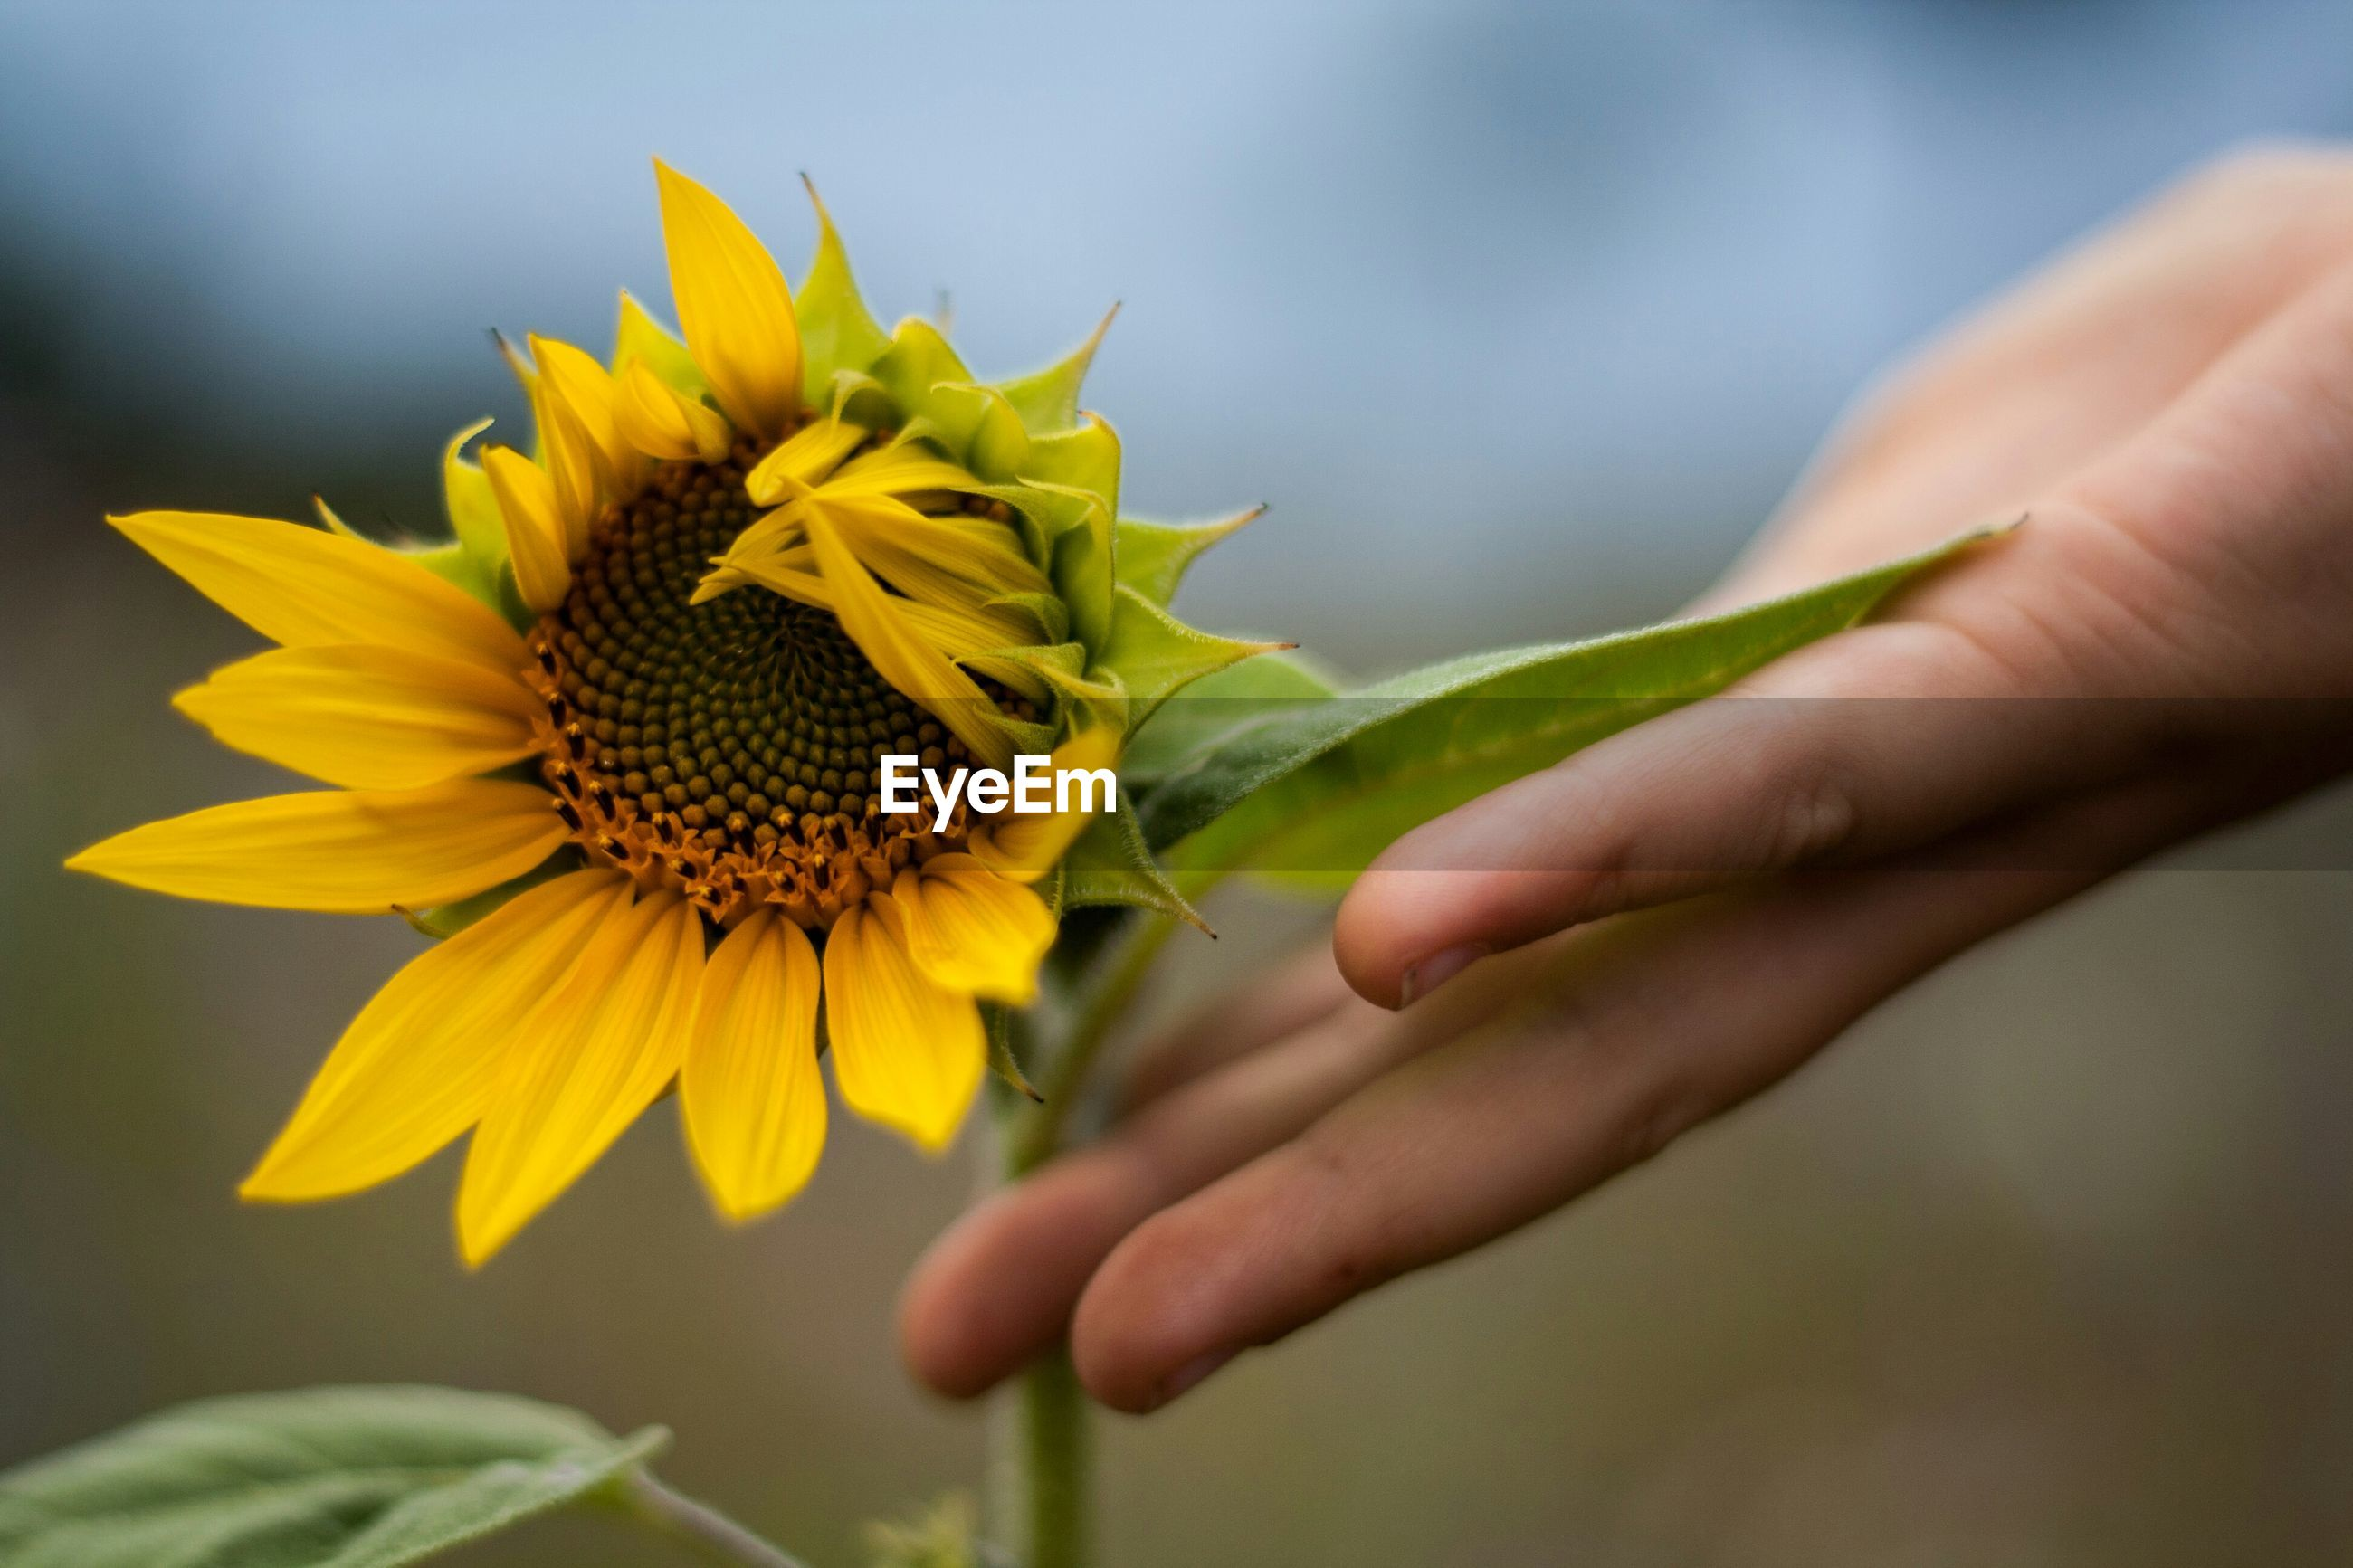 Close-up of hand touching sunflower plant